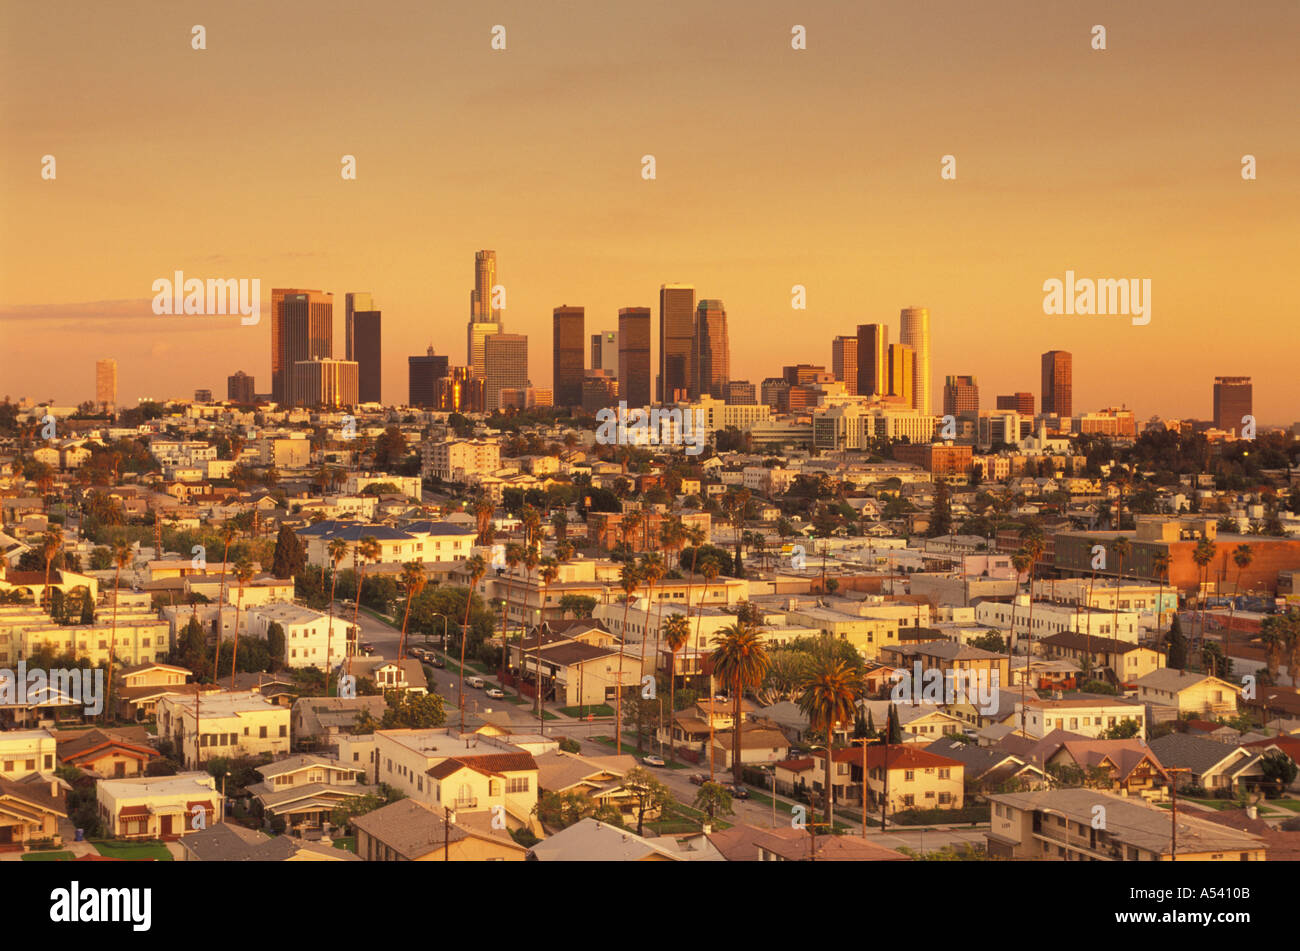 Overview of East Los Angeles and Civic Center above urban sprawl at sunset - Stock Image